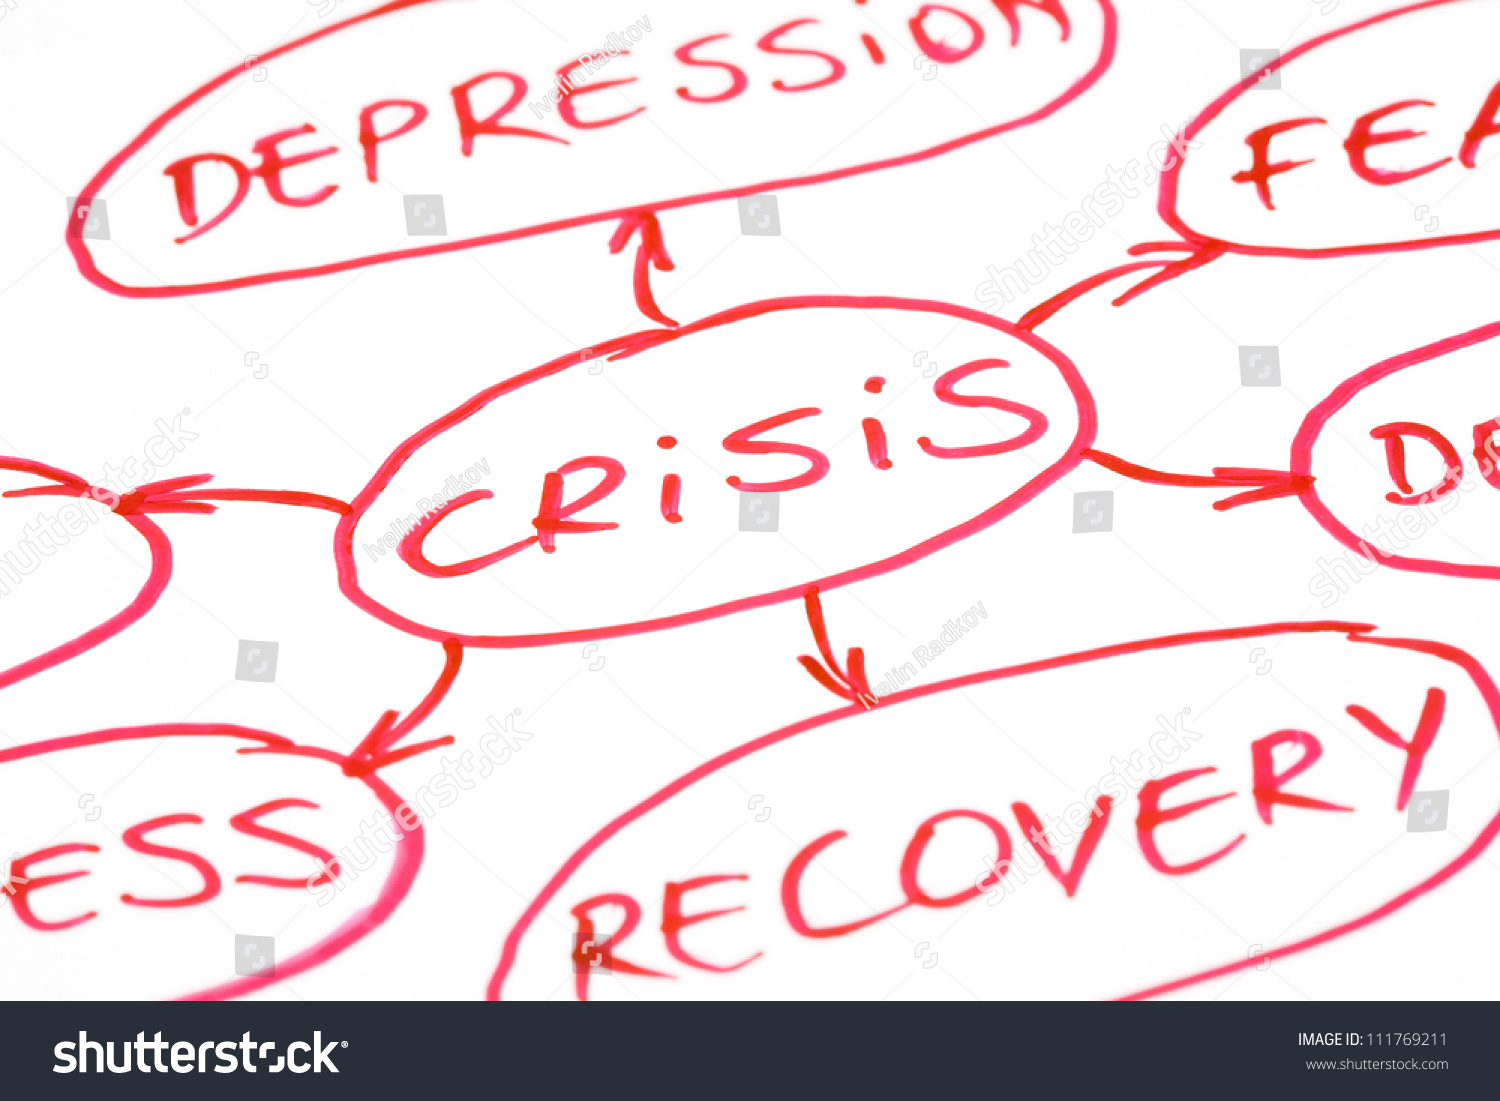 crisis and risk management in organizations management essay Introduction crisis management is a critical organizational function failure can result in serious harm to stakeholders, losses for an organization, or.